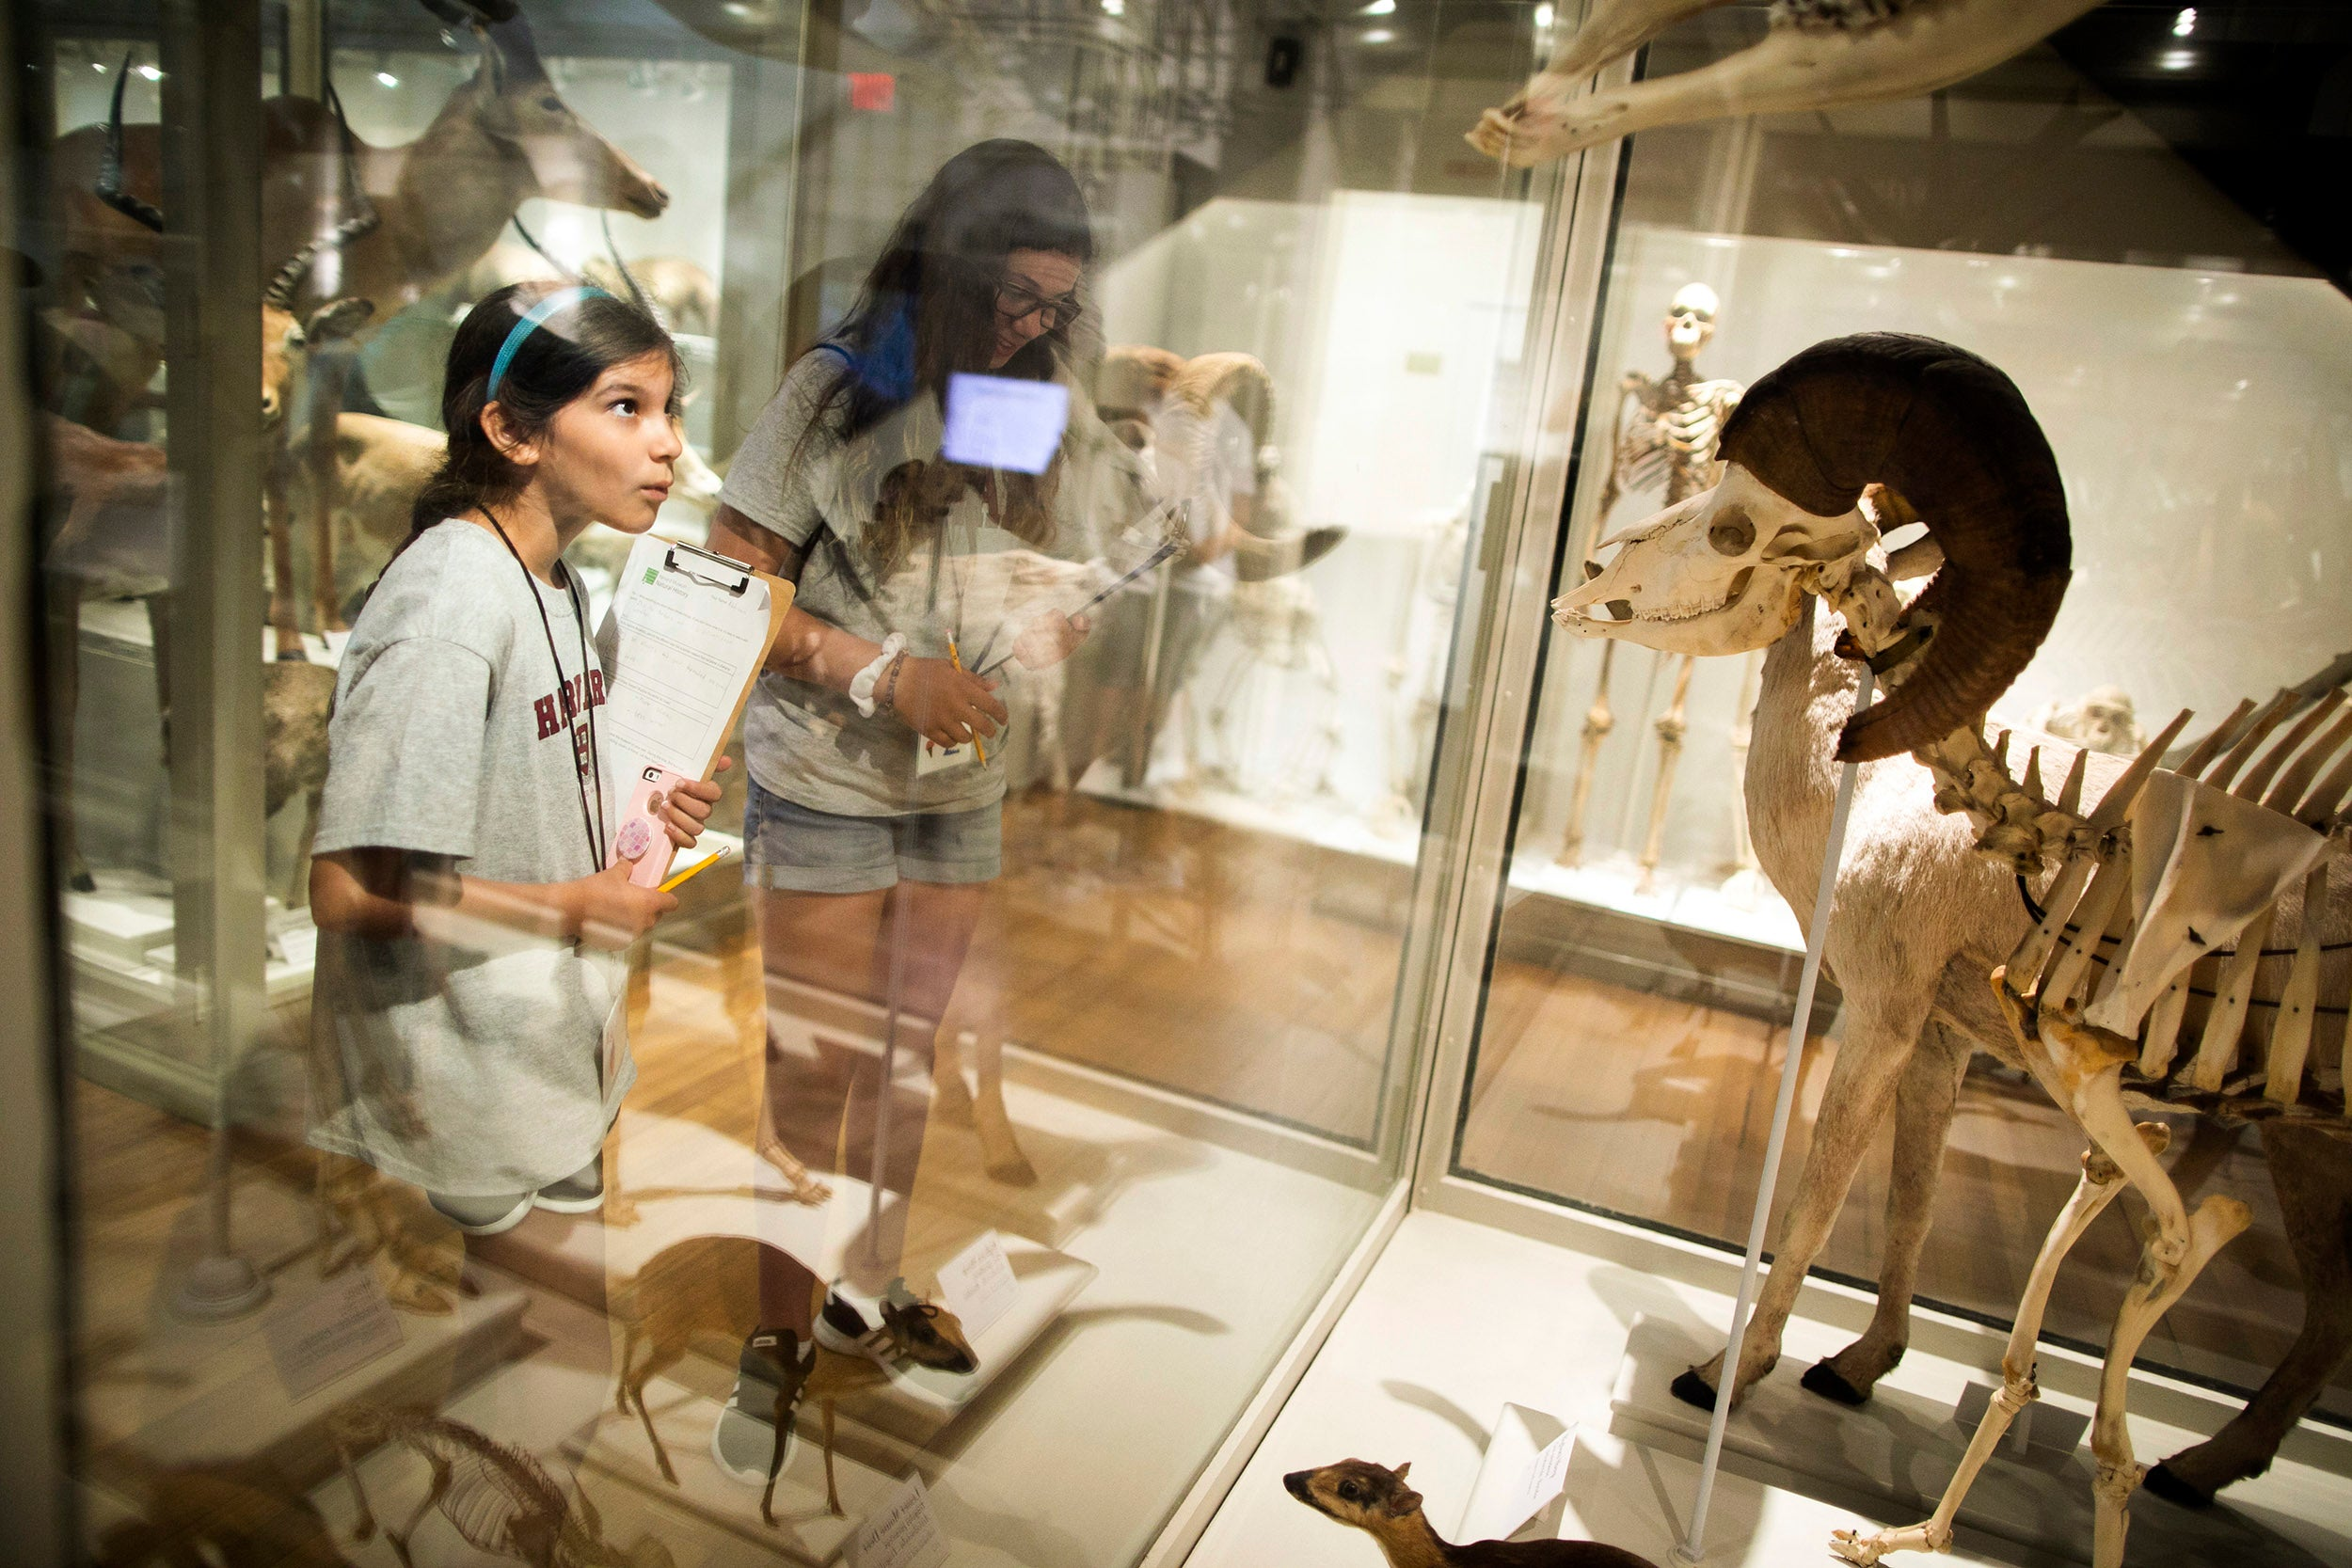 Addison Rich and Olivia Pappas explore some of the wonders at the Harvard Museum of Natural History.